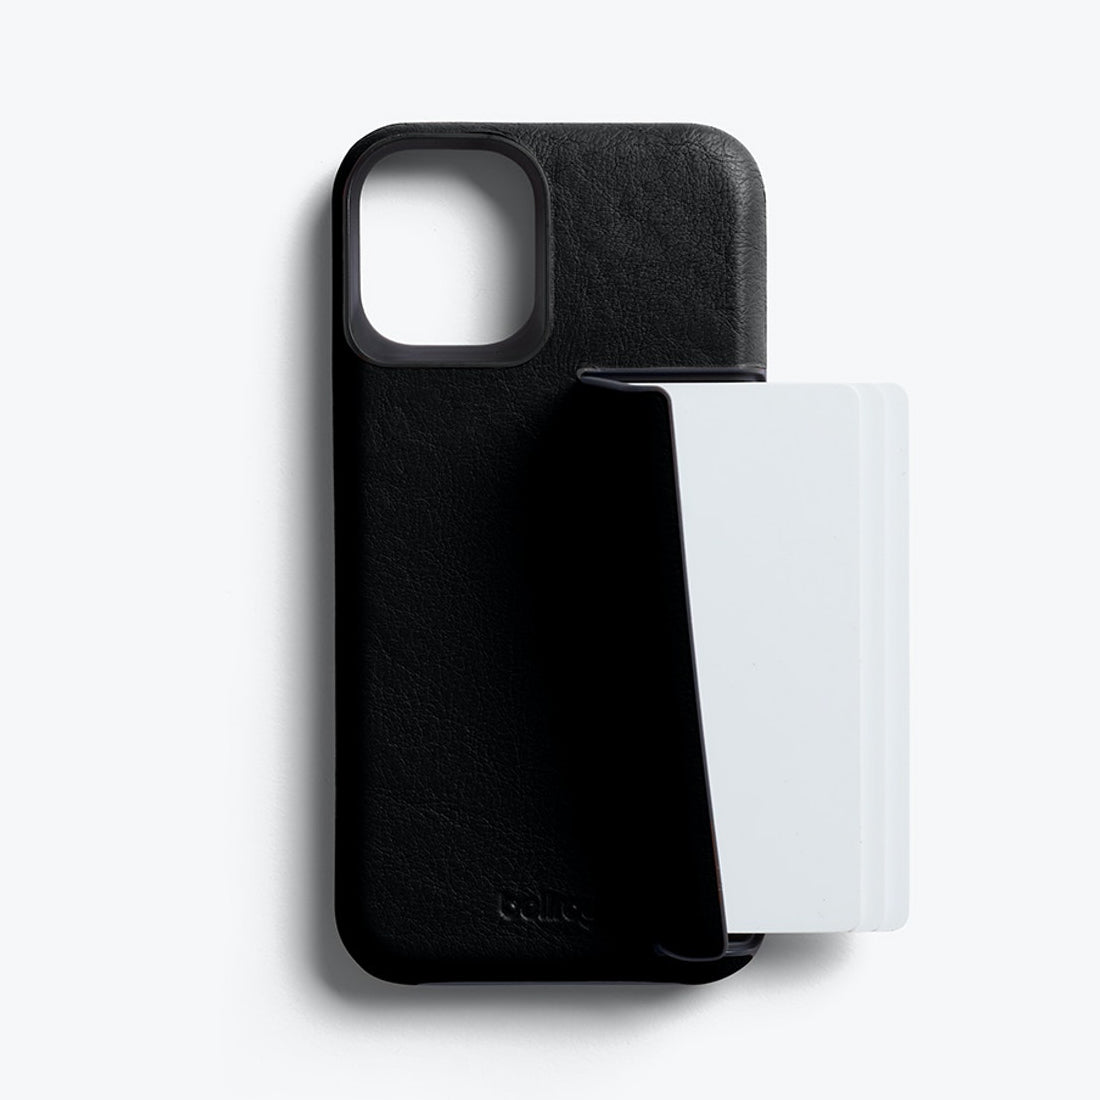 Bellroy 3-Card Genuine Leather Wallet Case For iPhone iPhone 12 mini - BLACK